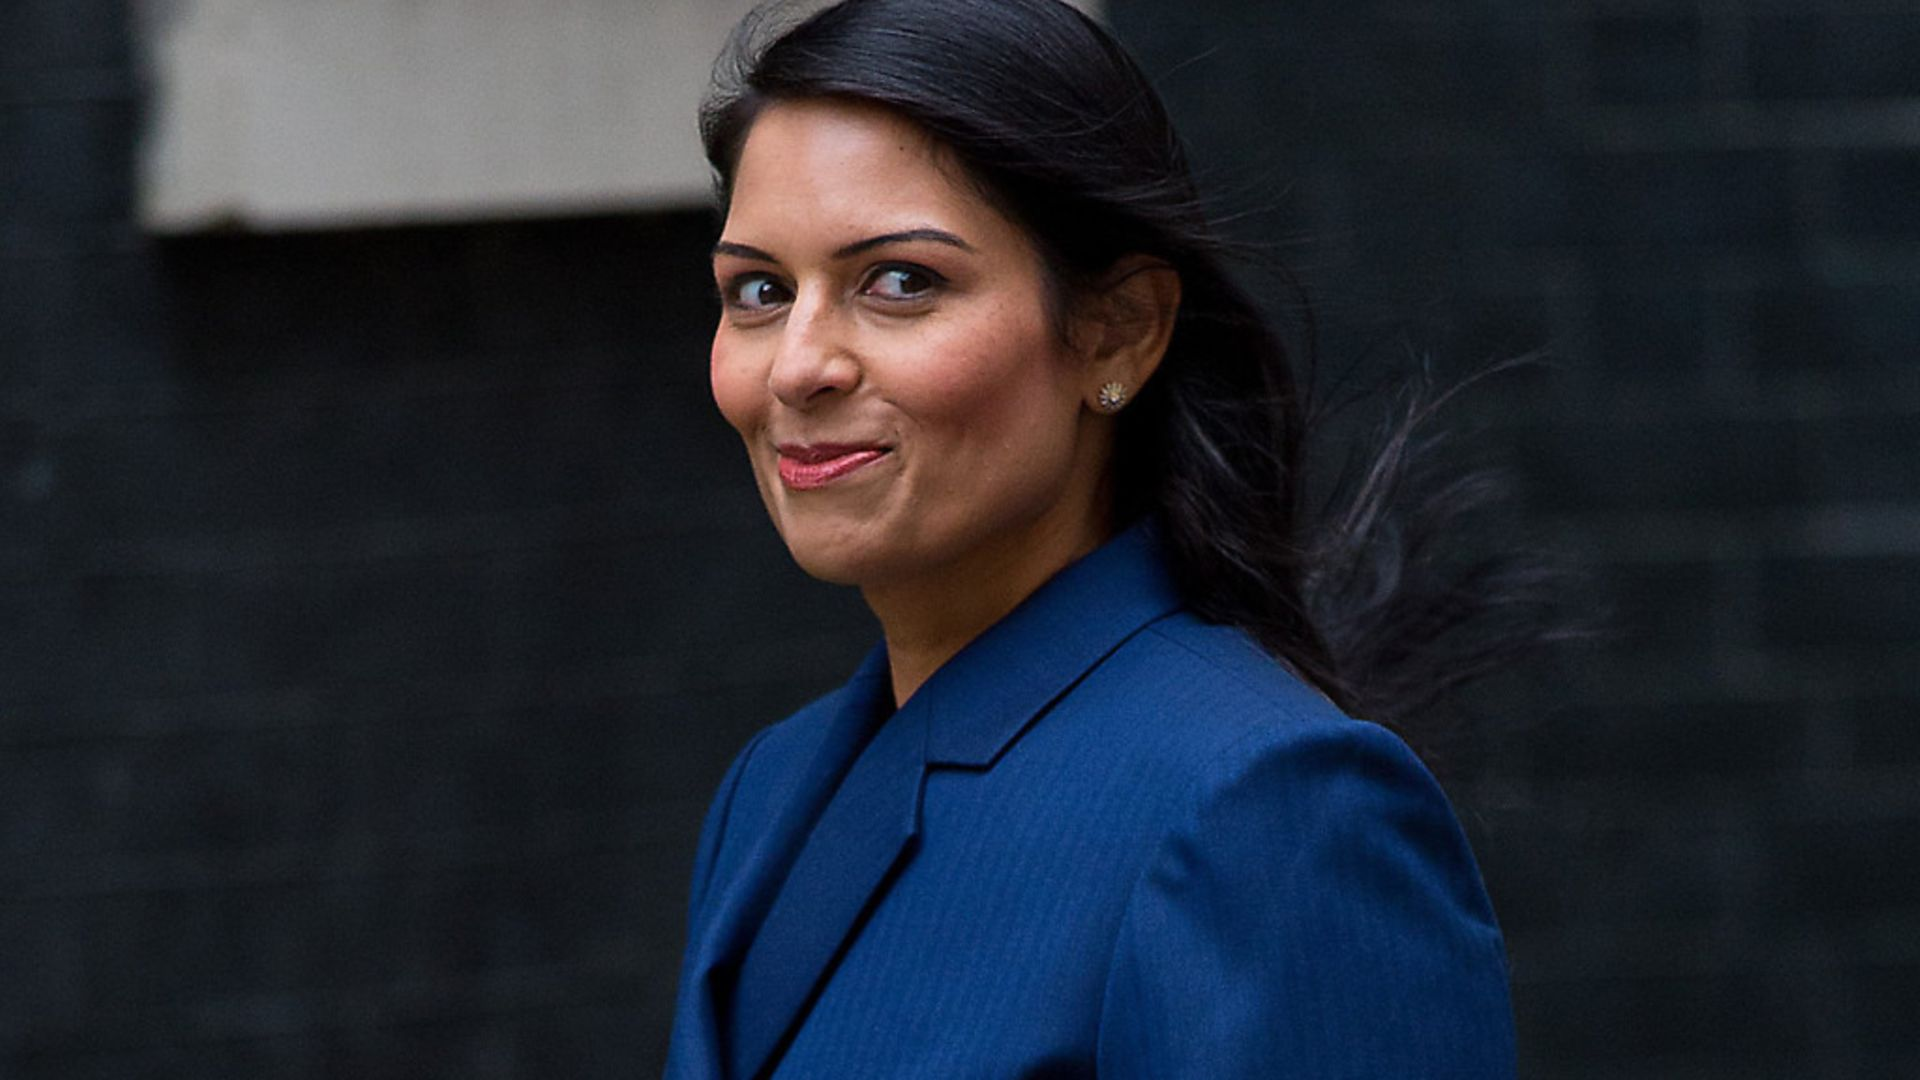 Home secretary Priti Patel arriving at Downing Street - Credit: Getty Images